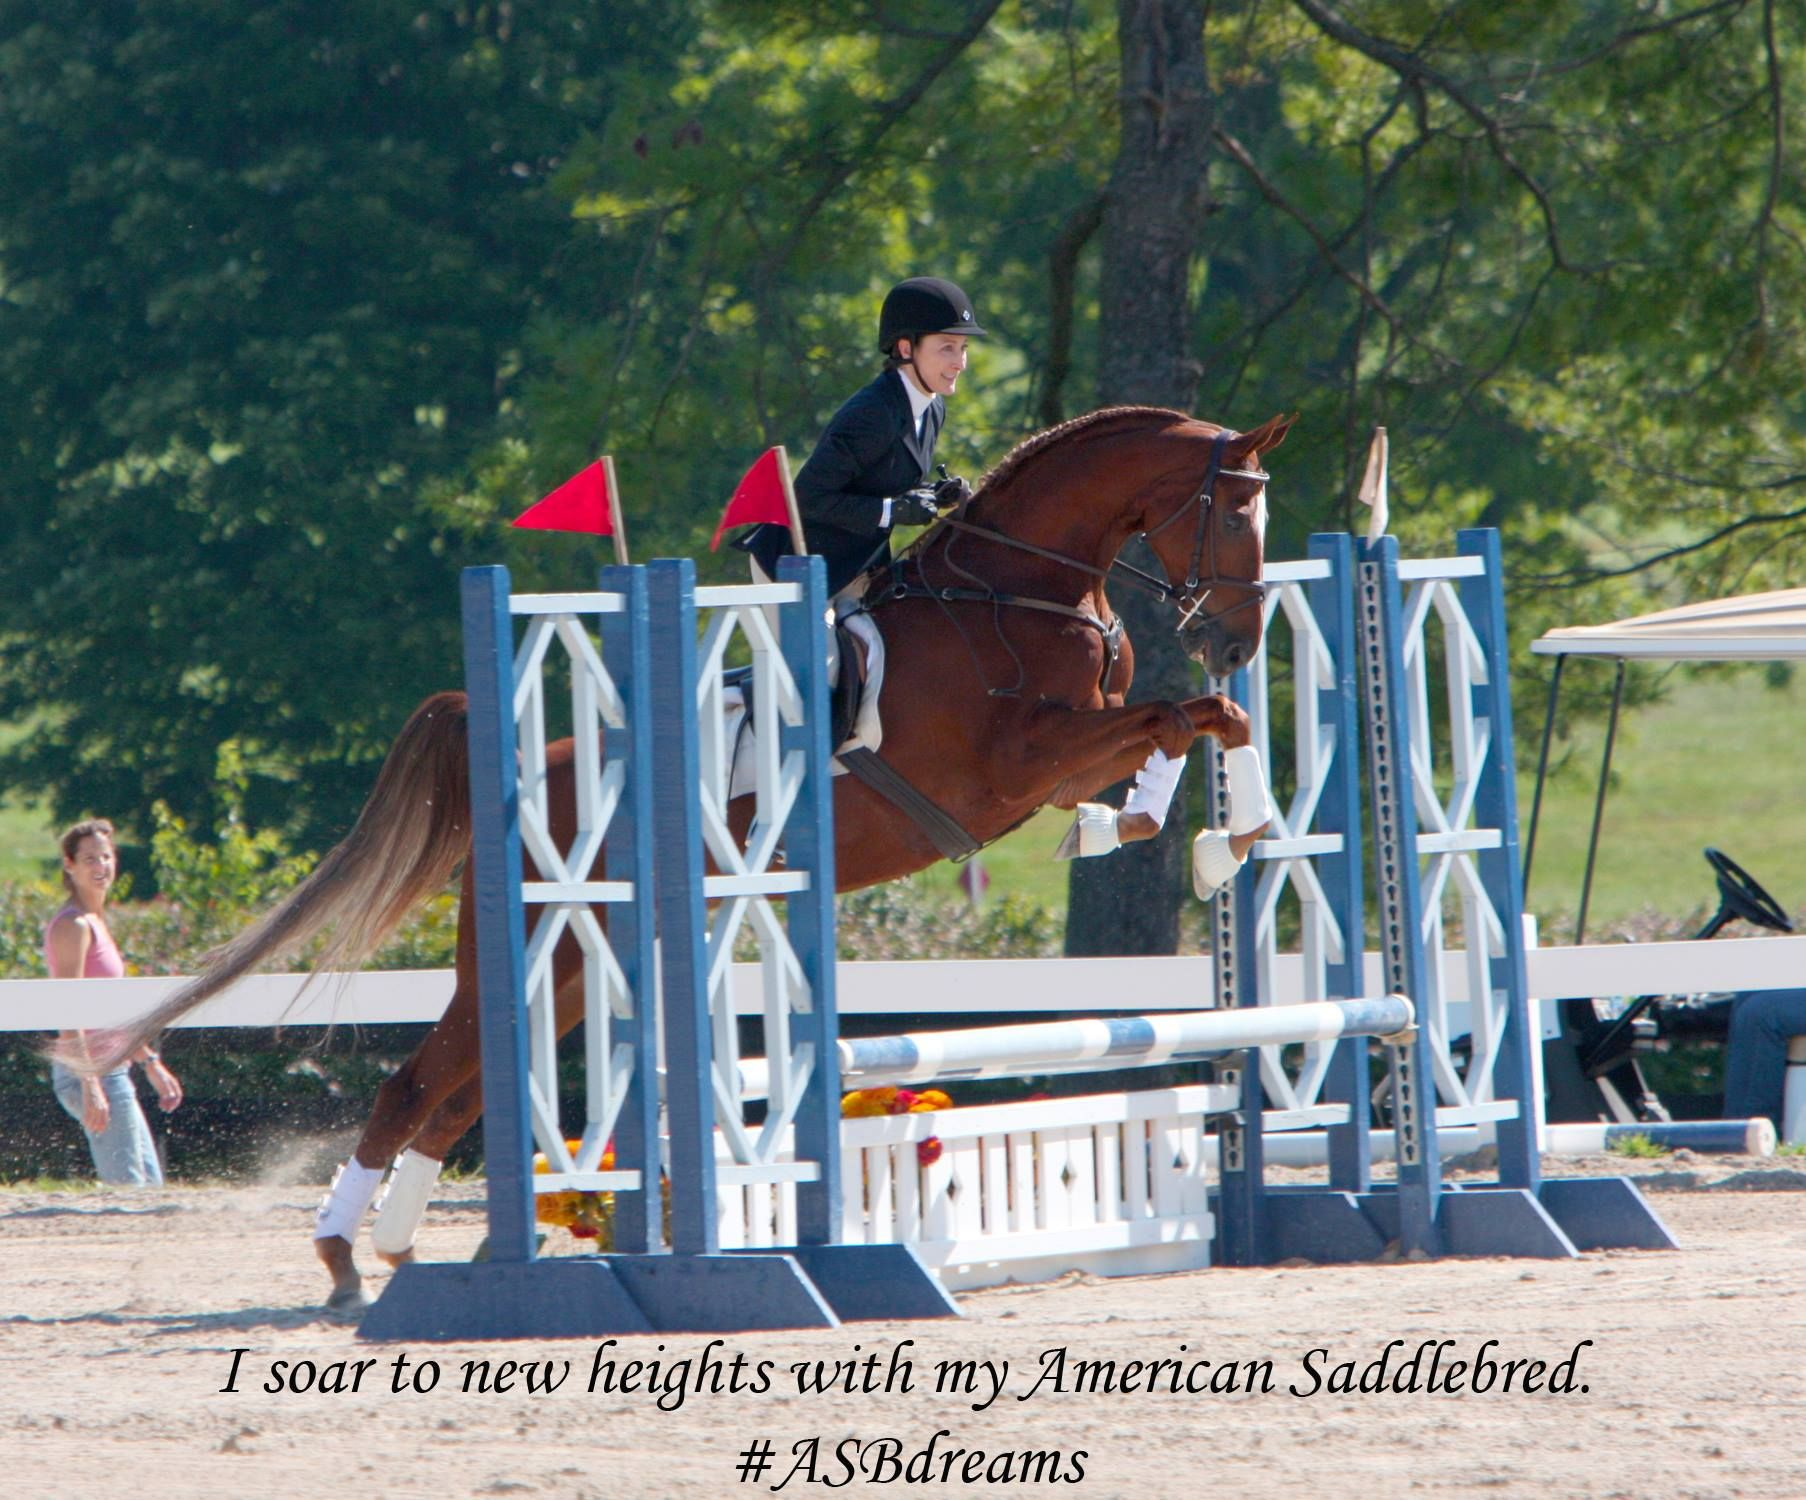 Soar to new heights with an American Saddlebred! # ...